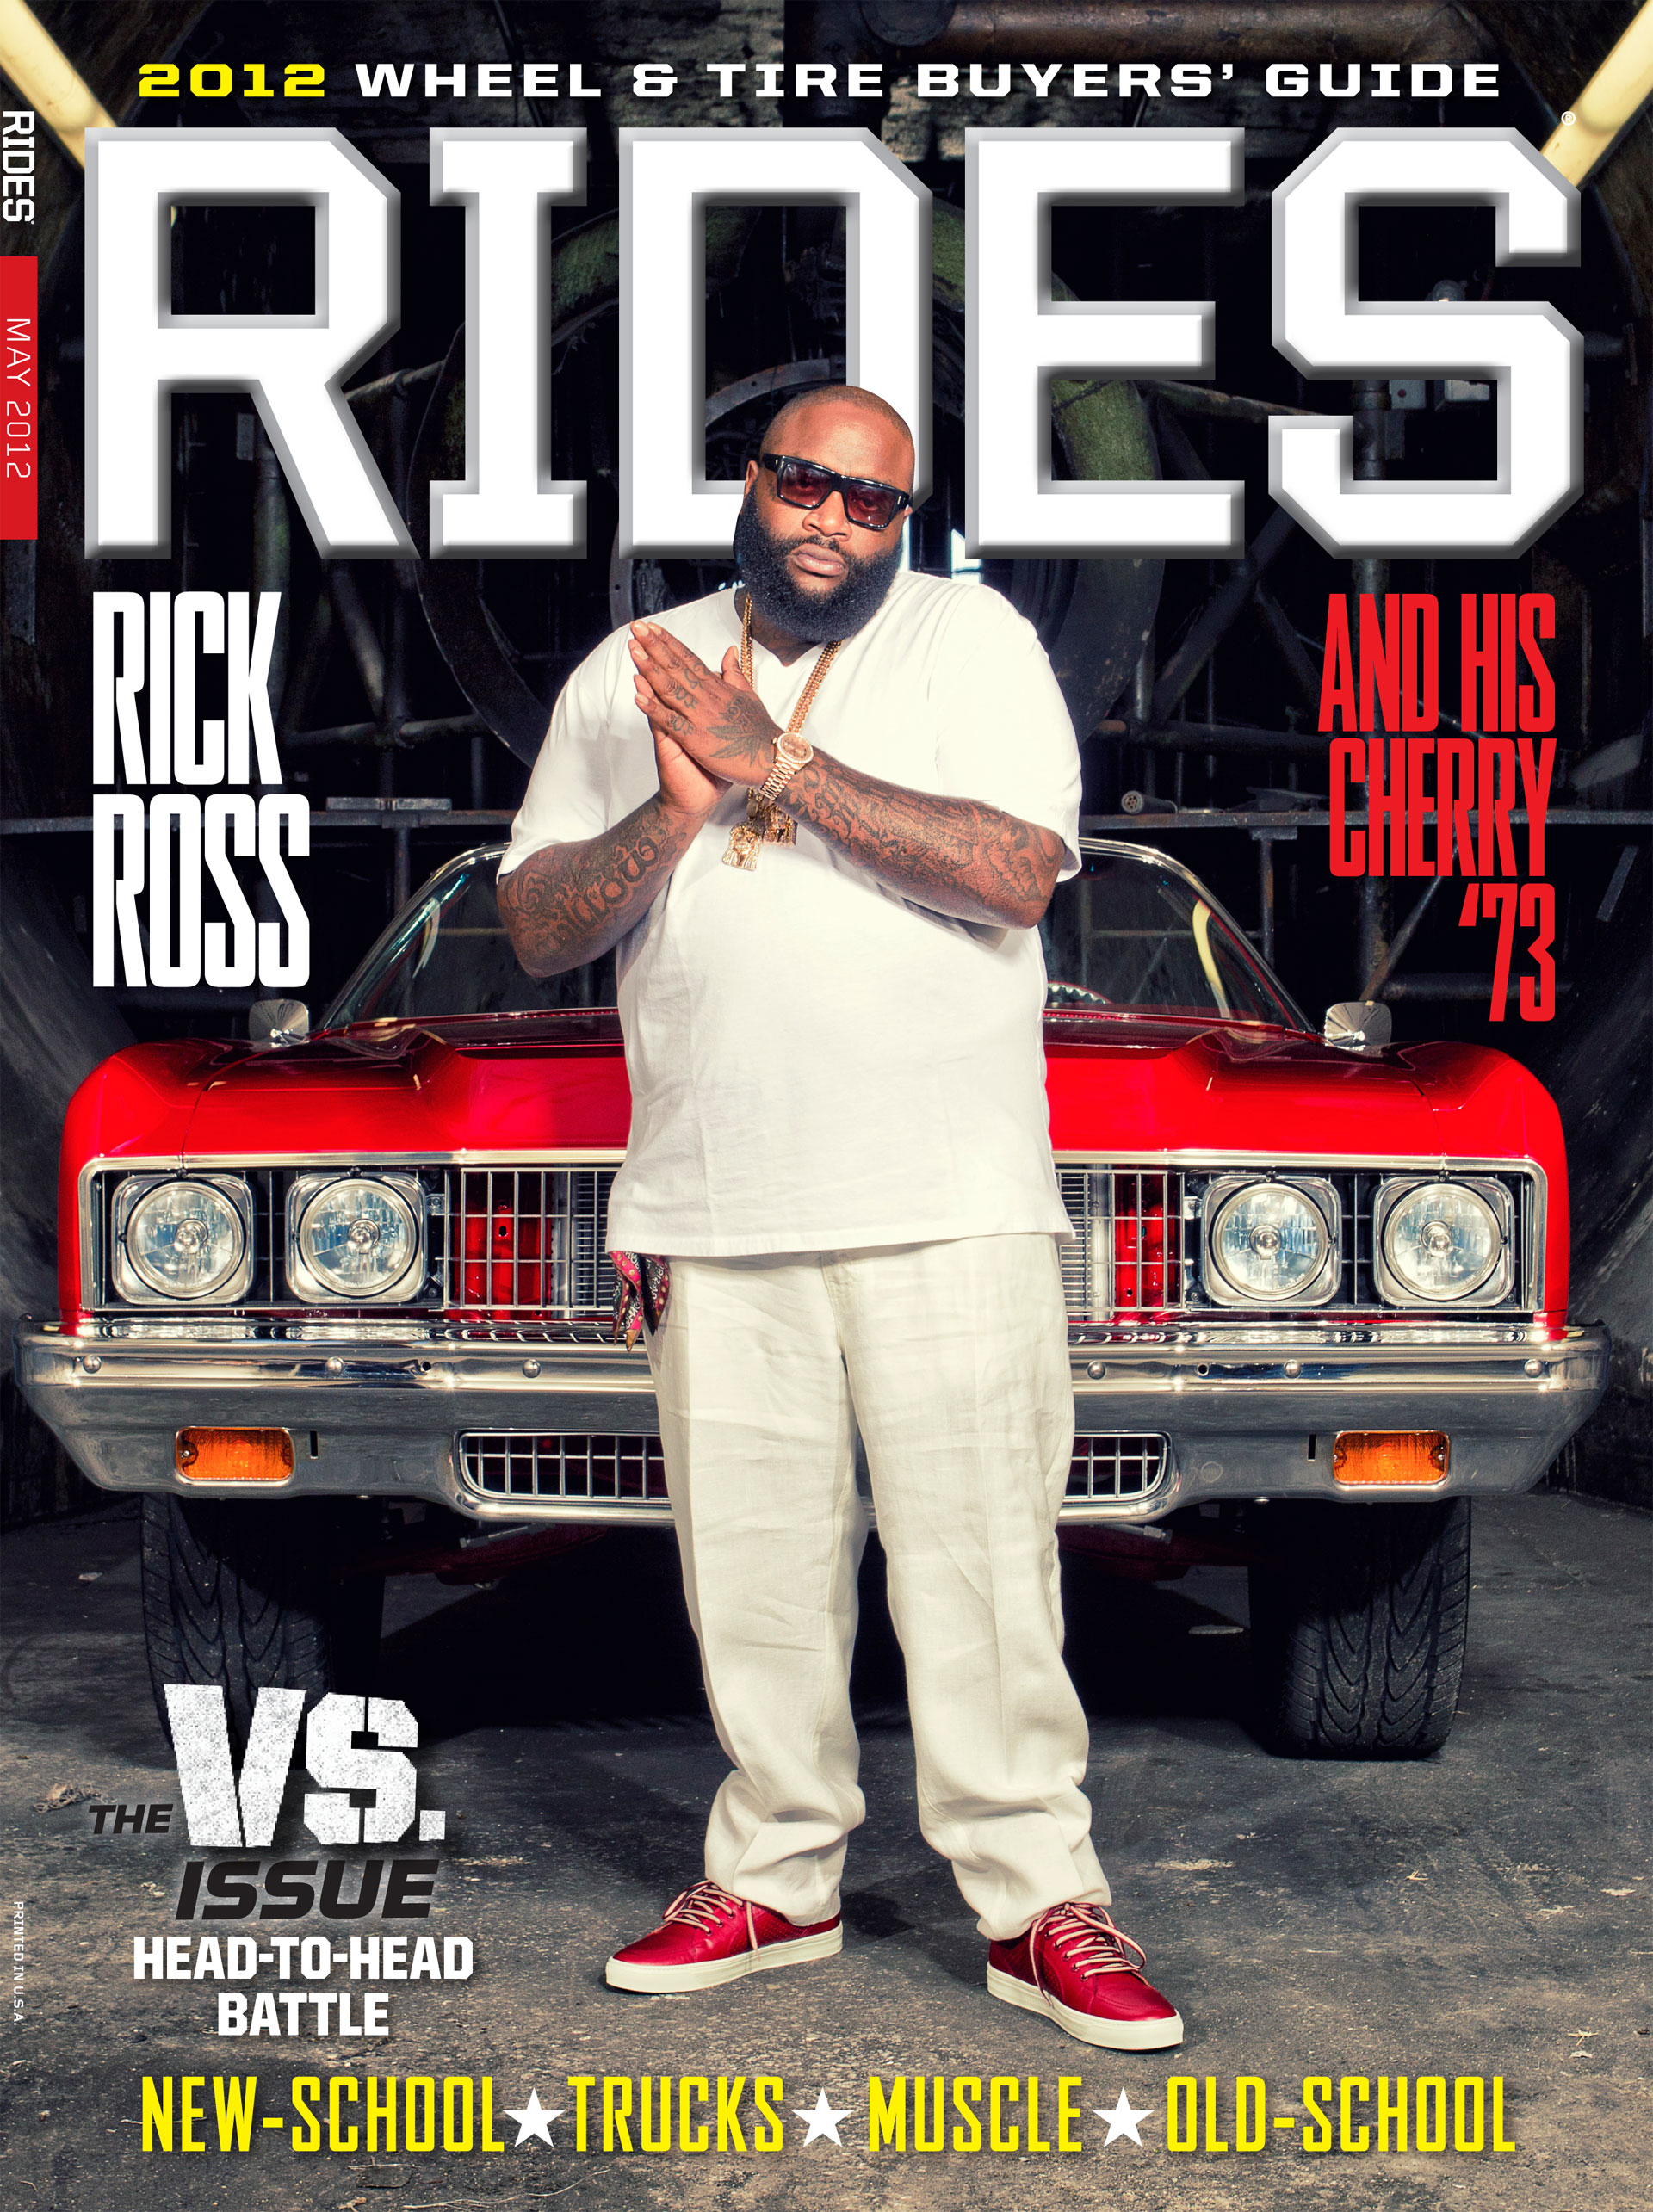 rides cars 54 issue may 2012 rick-ross versus vs alternate cover